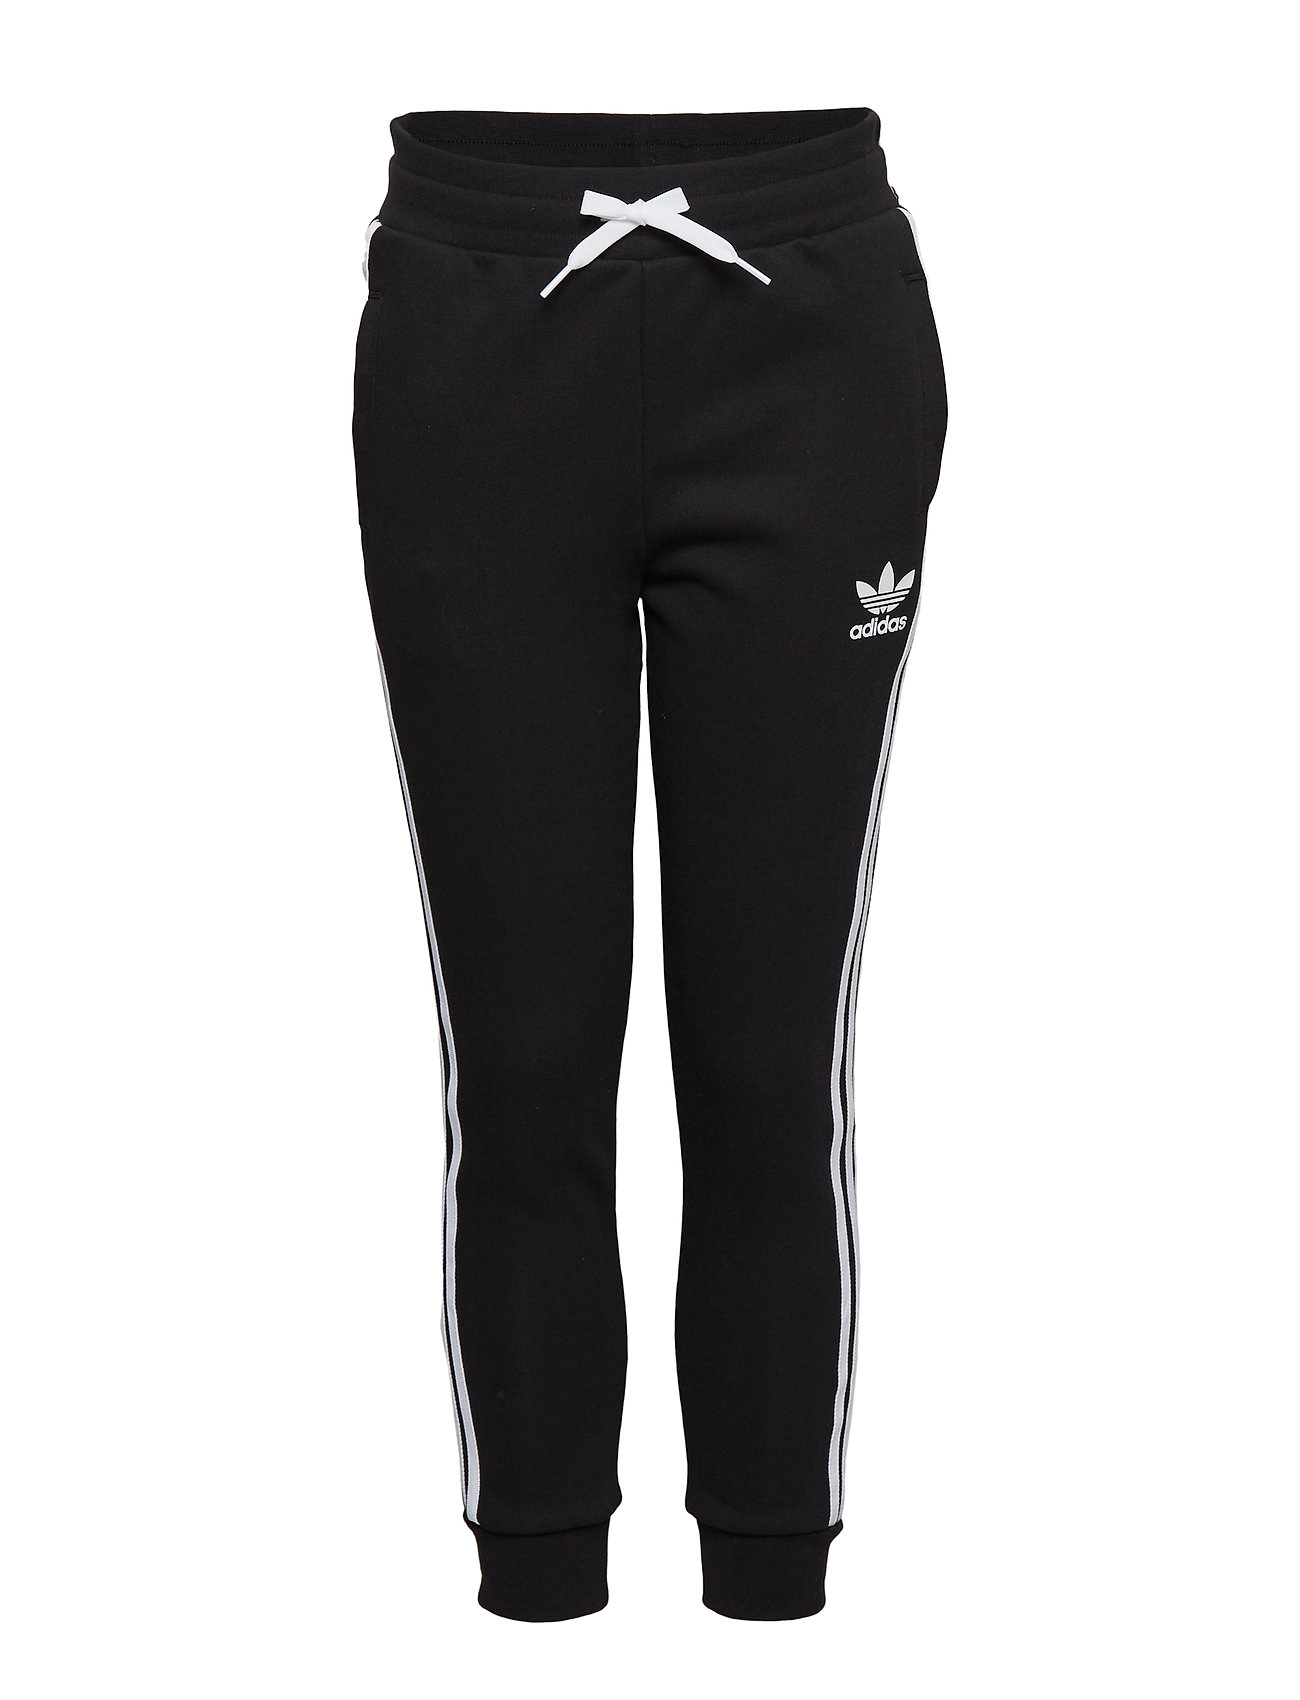 adidas Originals TREFOIL PANTS - BLACK/WHITE